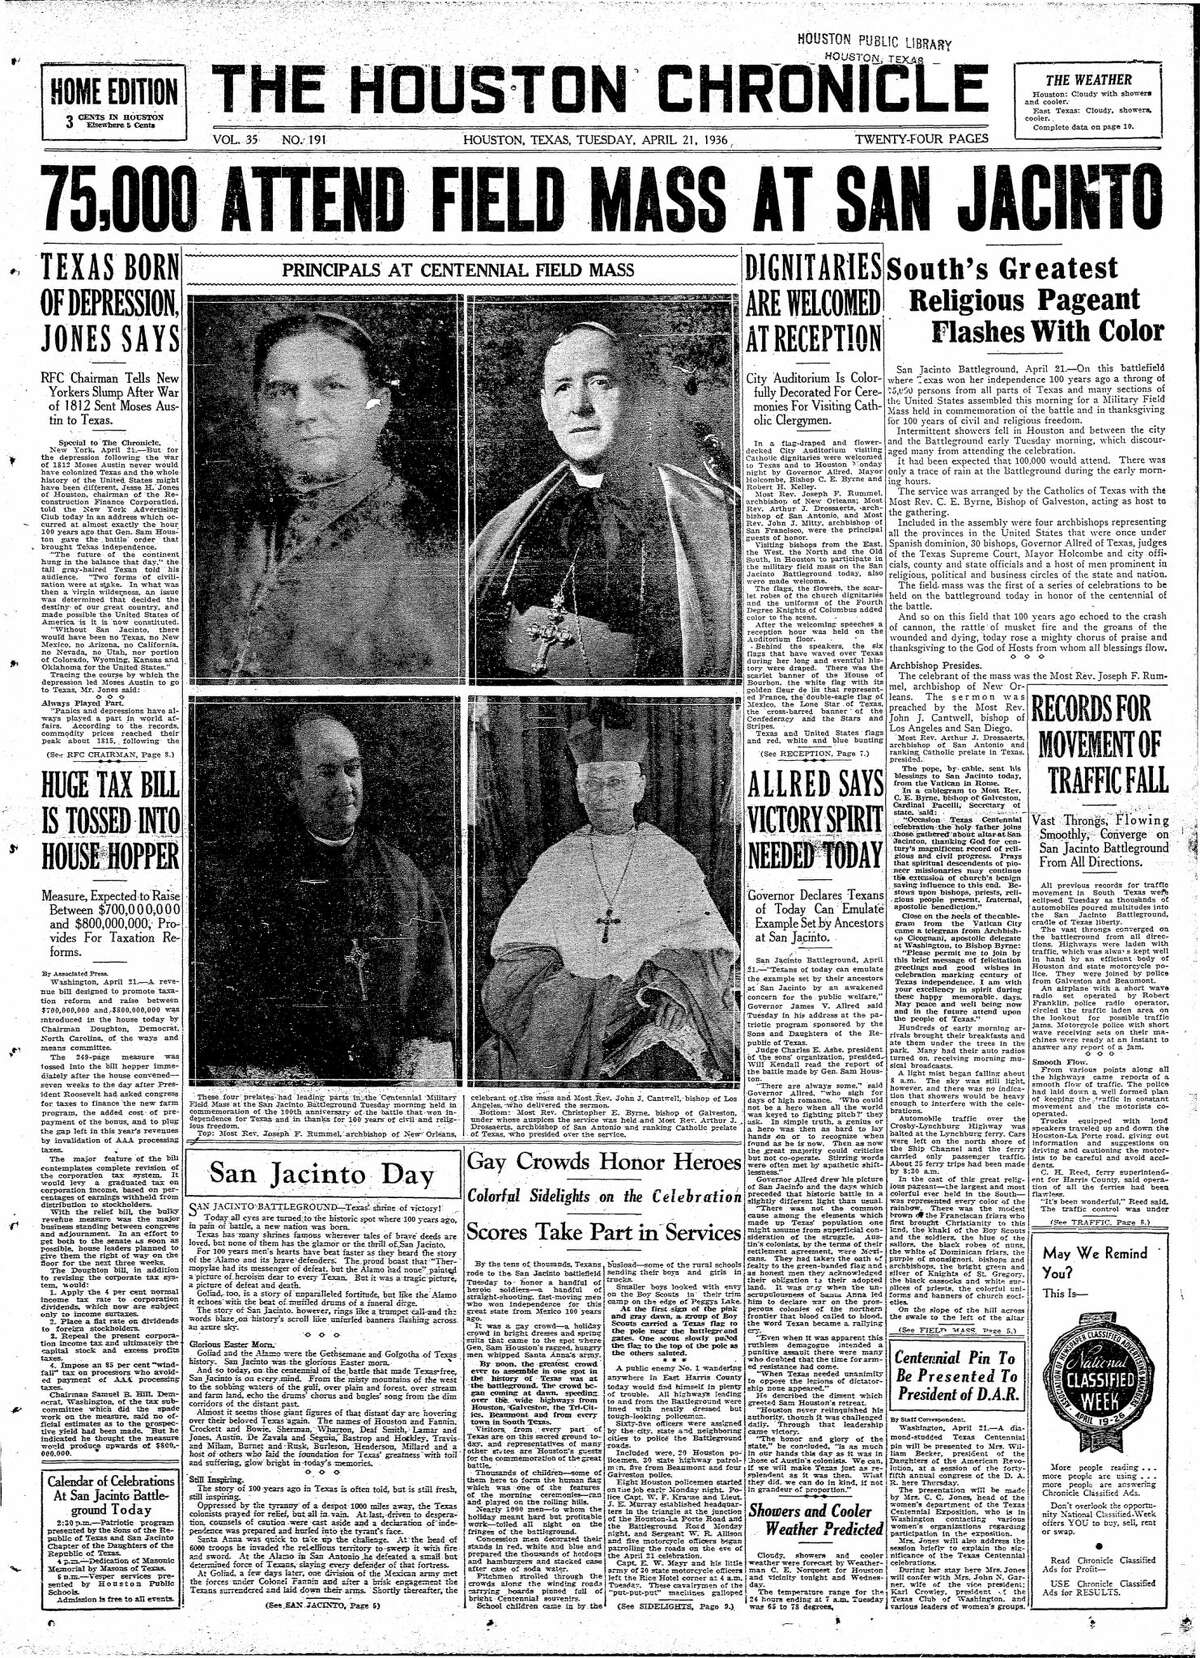 Houston Chronicle front page from April 21, 1936.